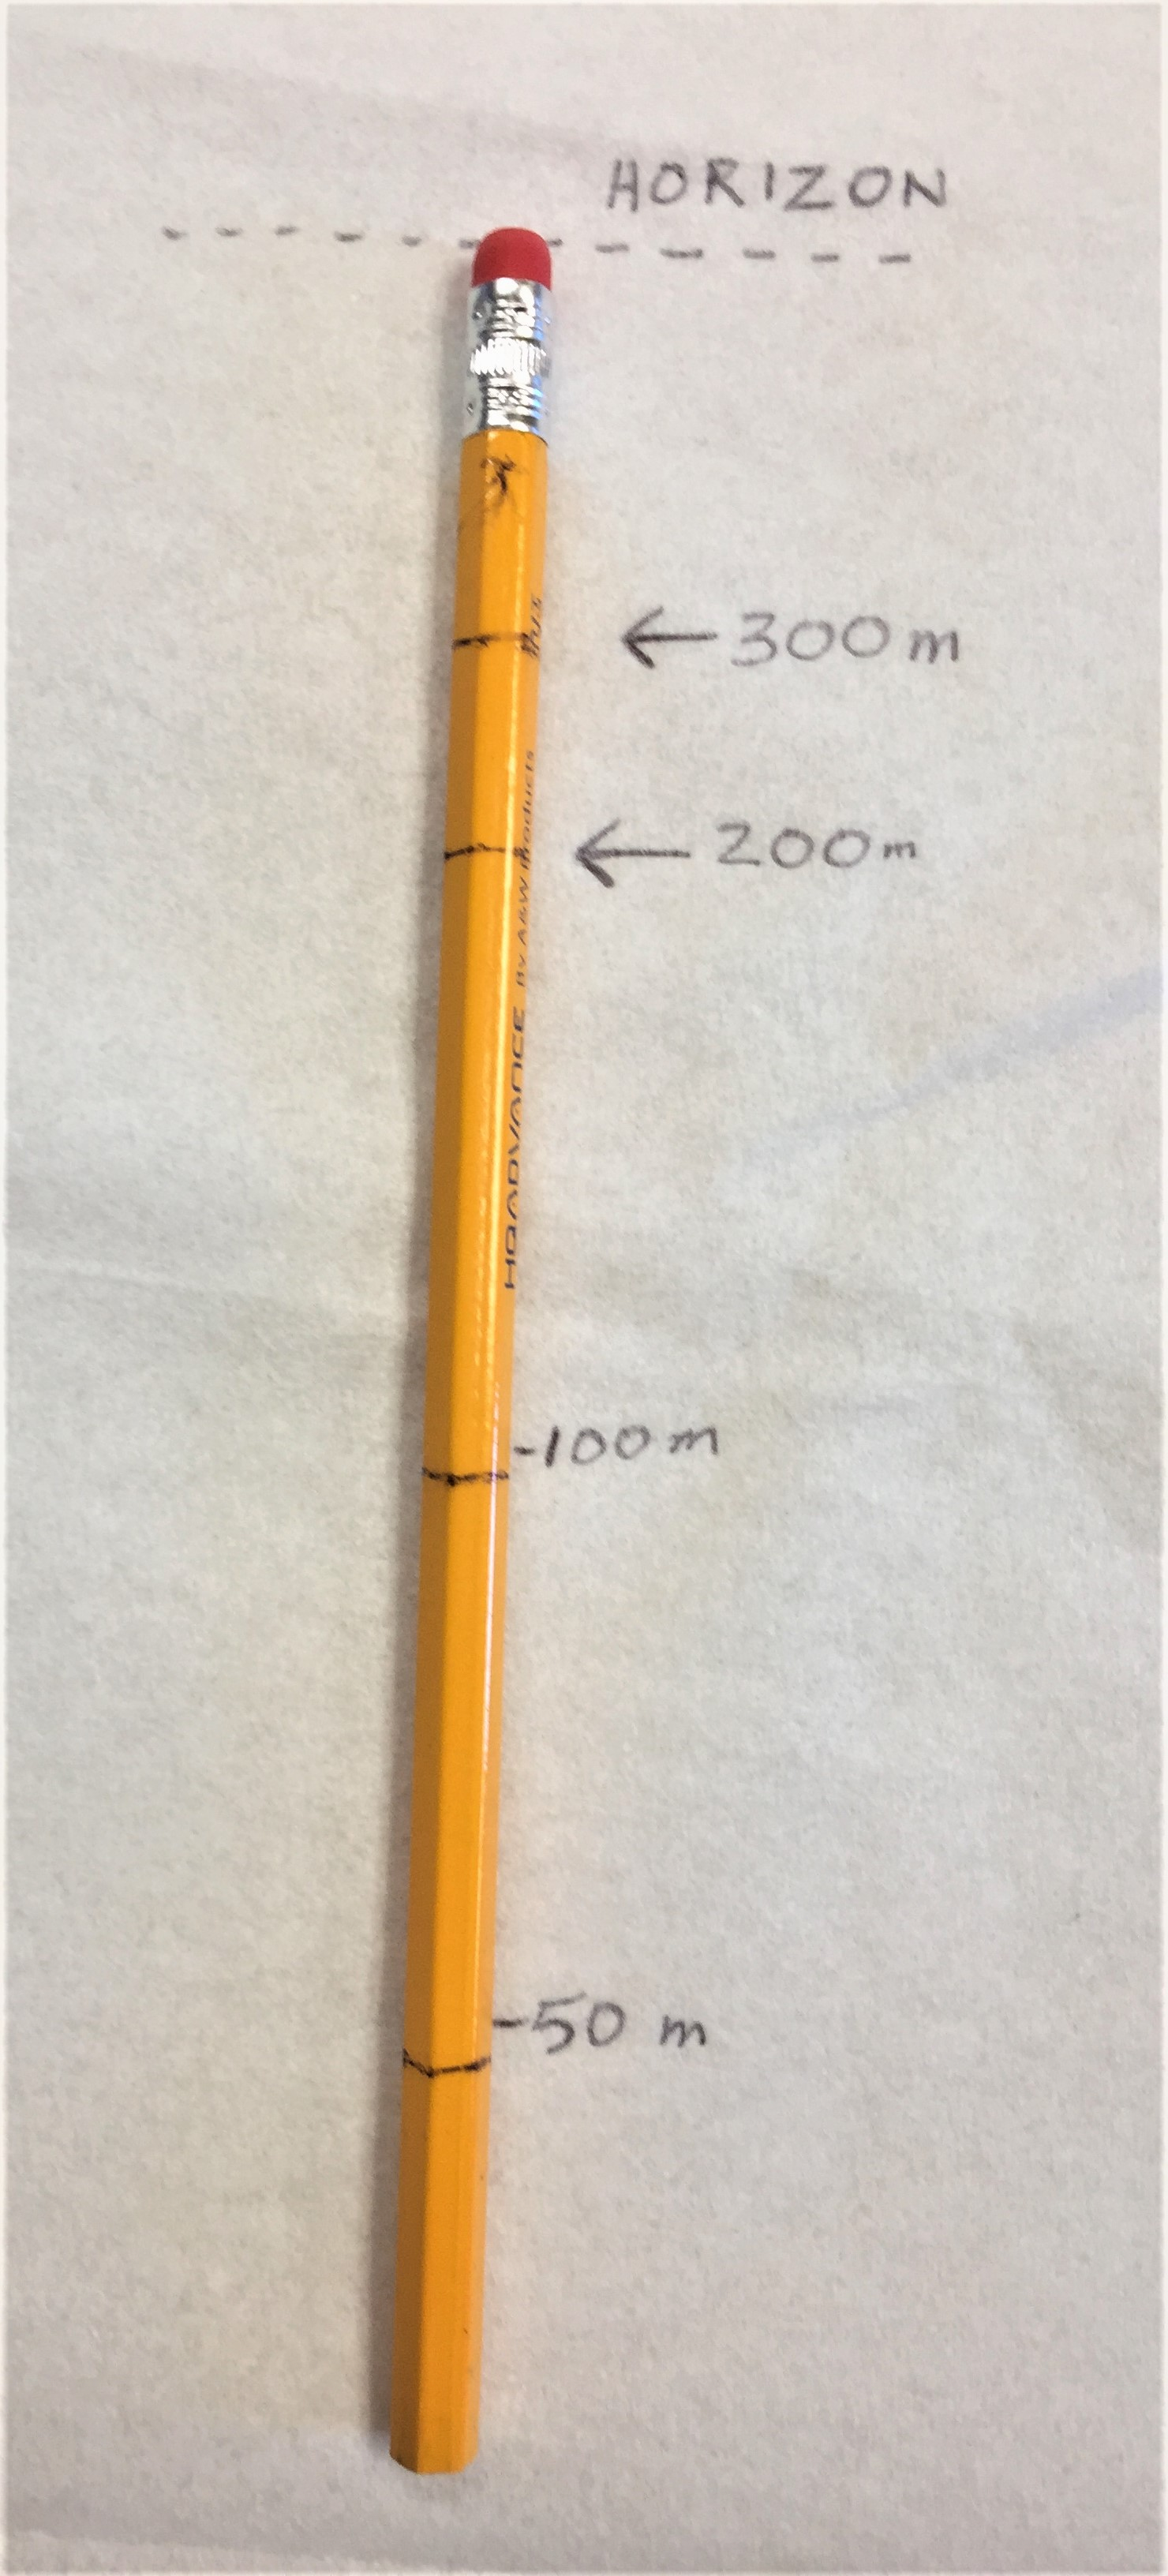 Pencil as observation tool